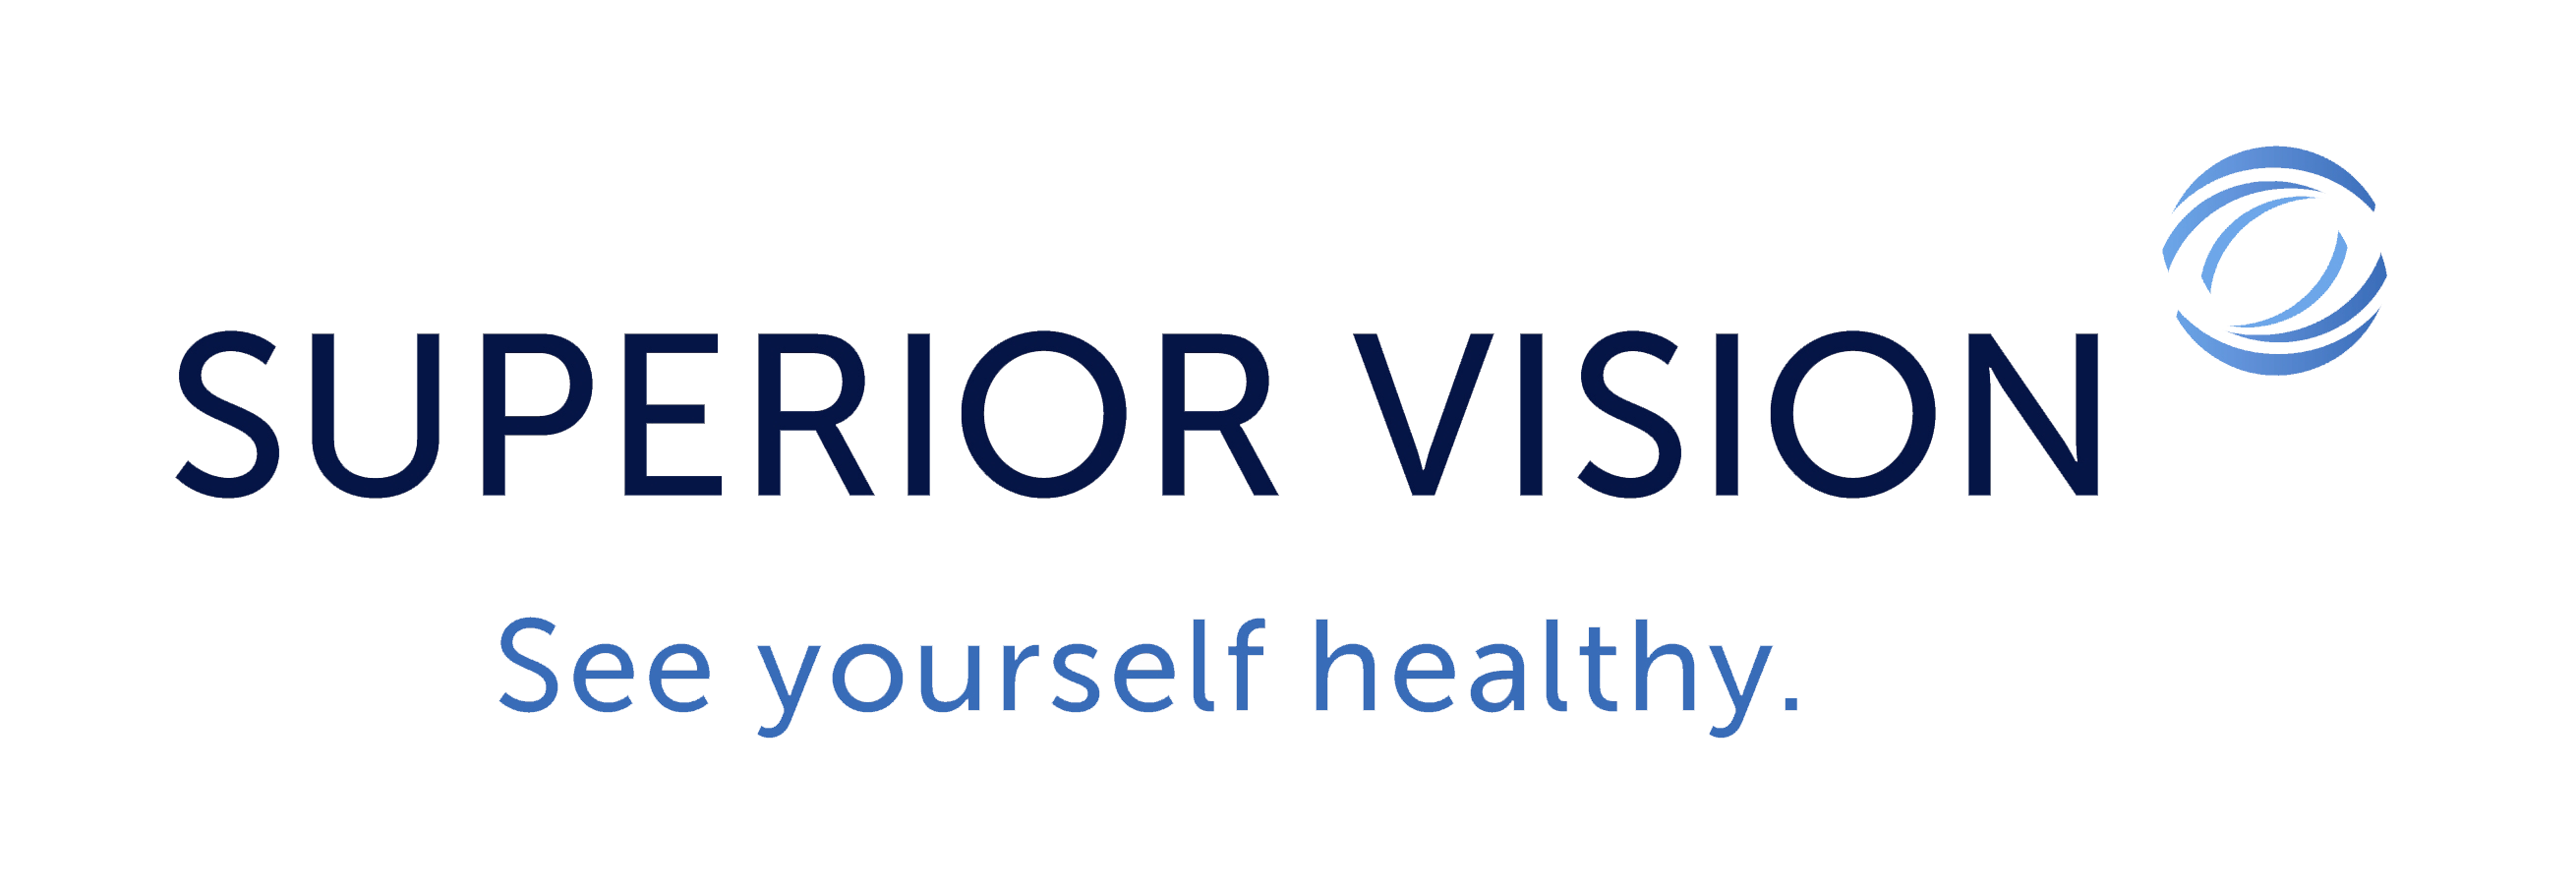 Benefits portal toll free. Superior vision logo png clip art black and white download